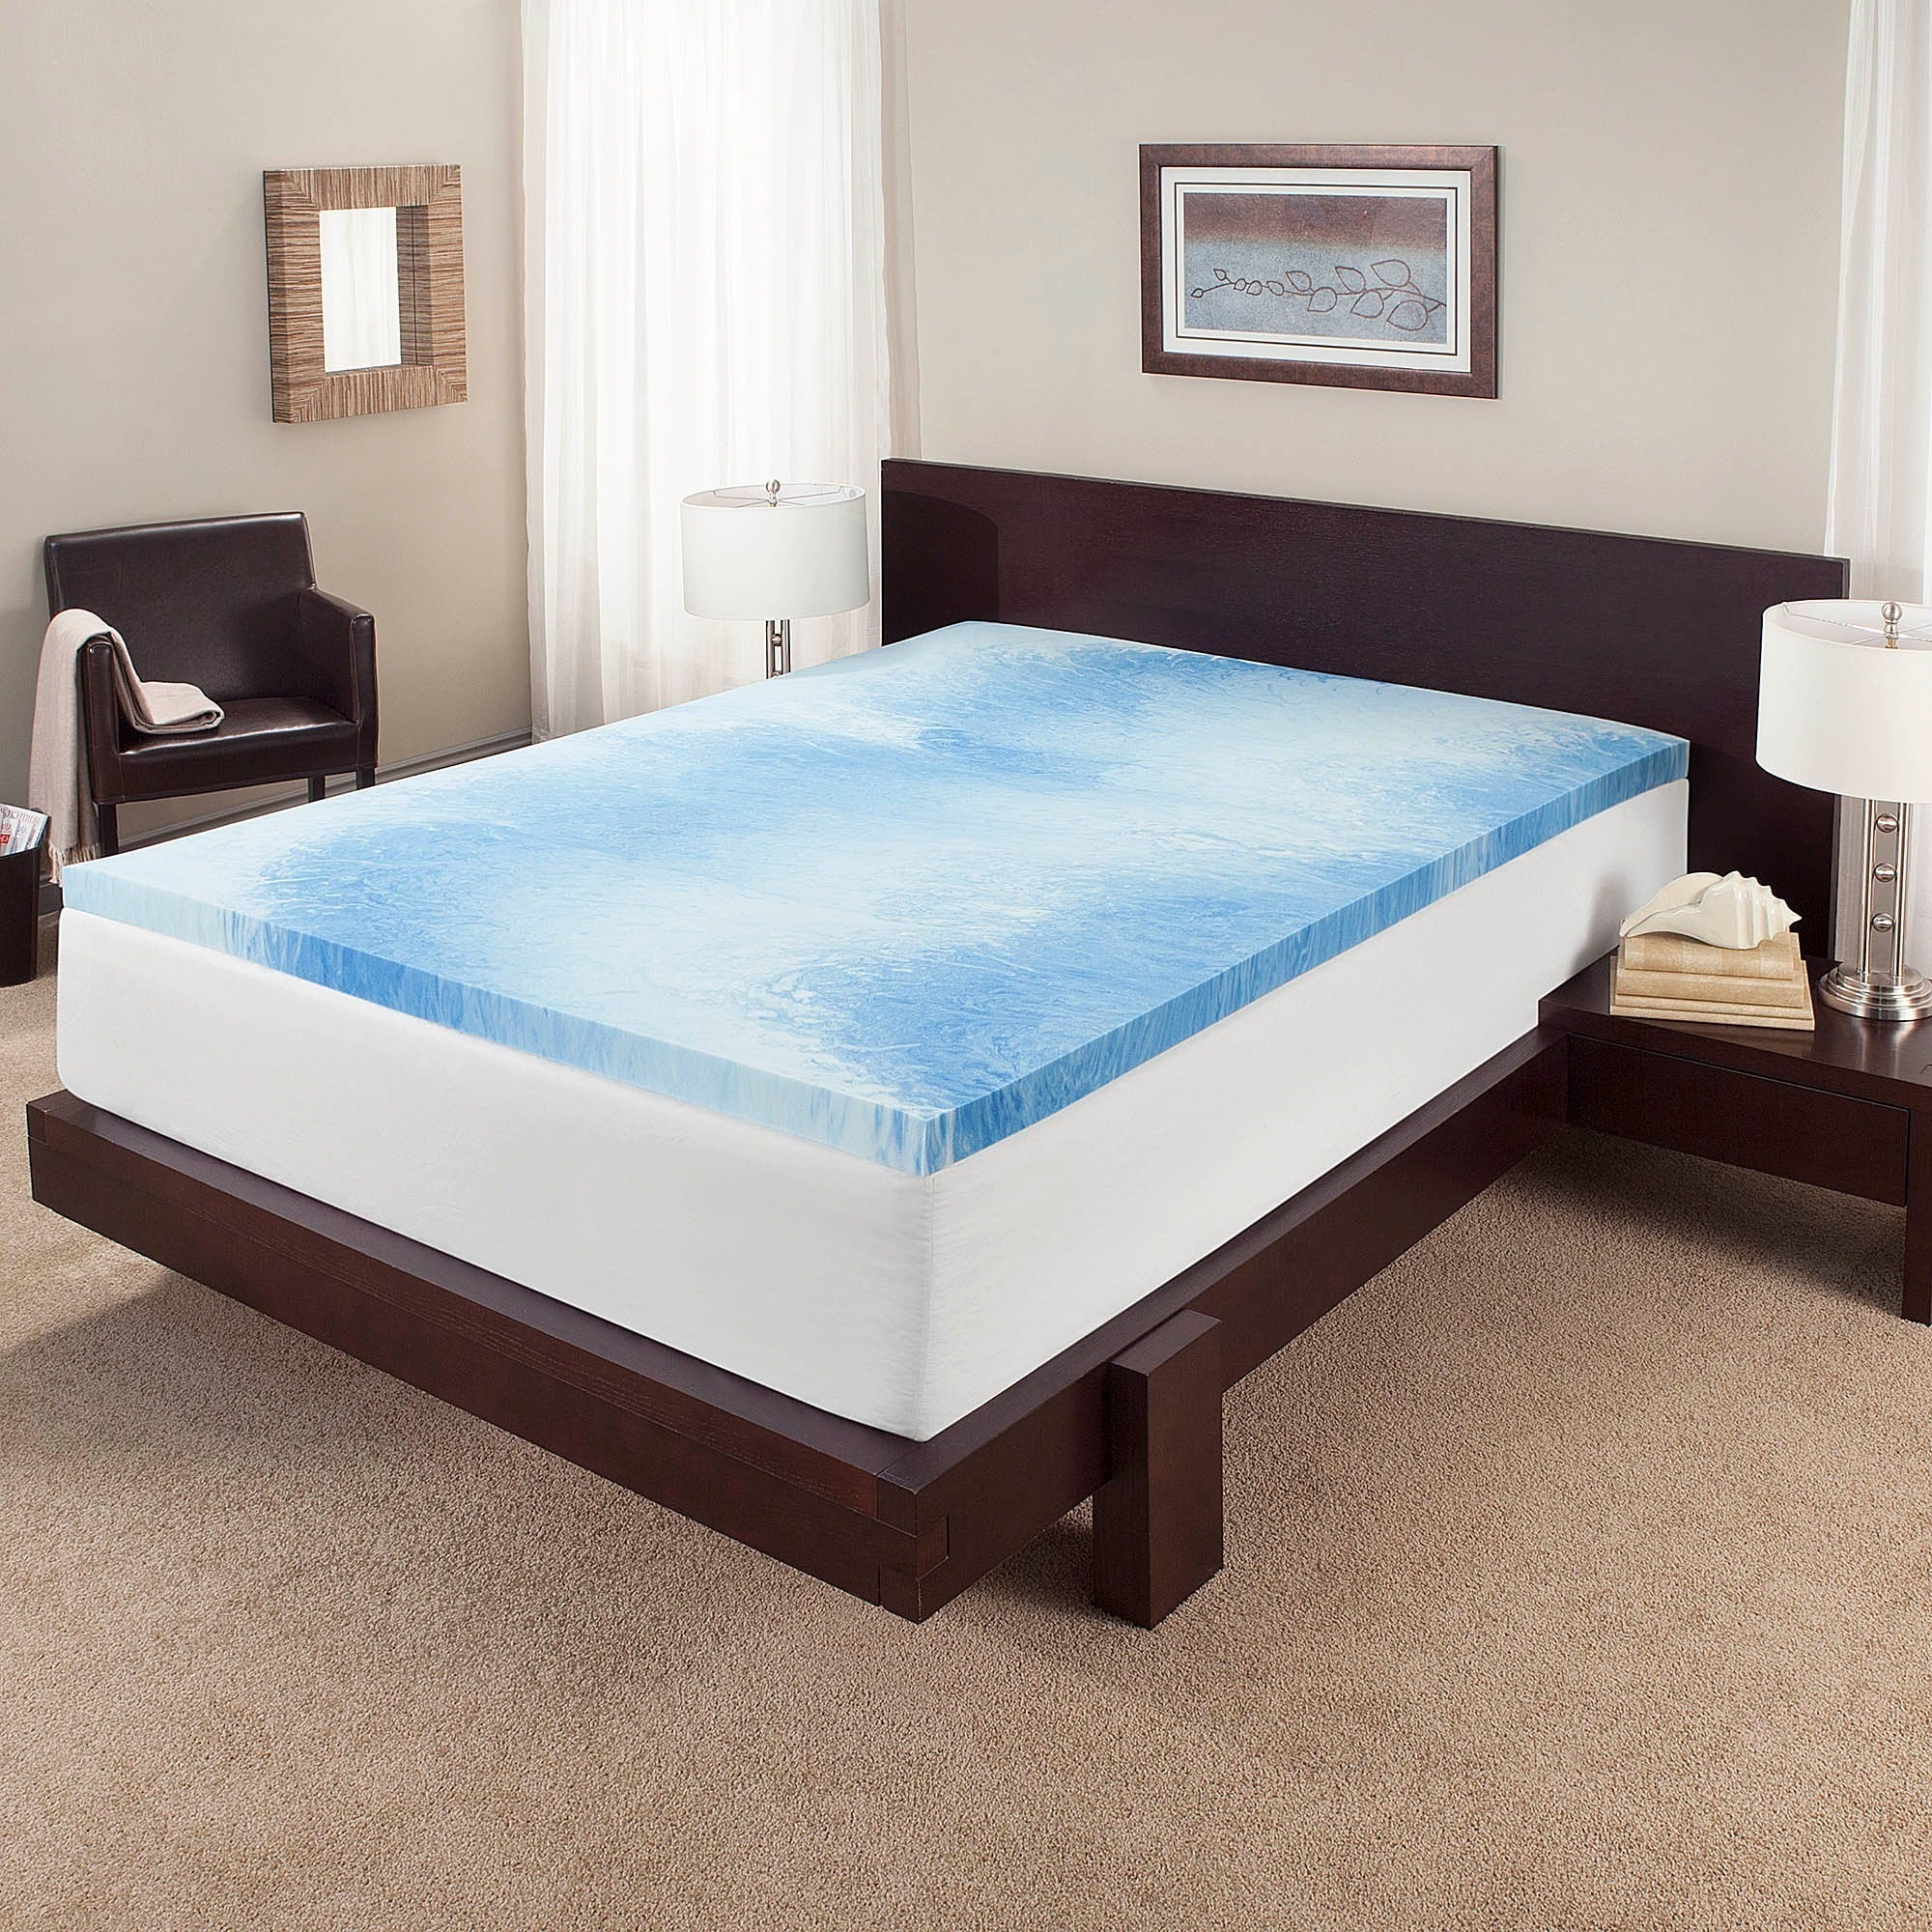 mattressr full photo memory of twin xl ideas serta walmartgel gel size foam reviews king cool topper dazzling mattress